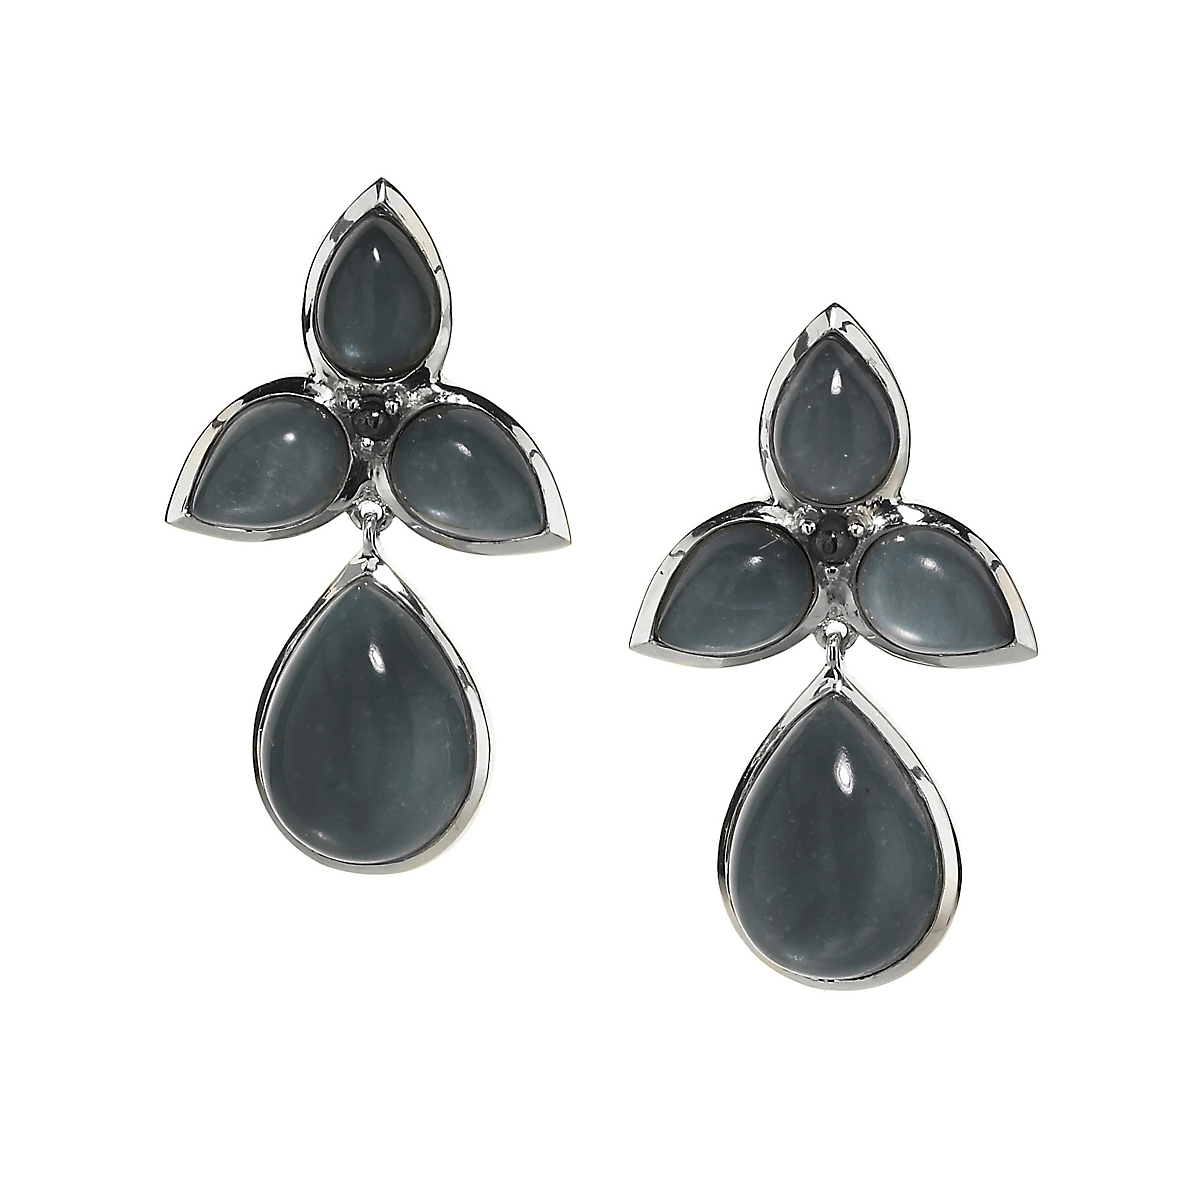 Elizabeth Showers Hematite & Quartz Mariposa Teardrop Earrings